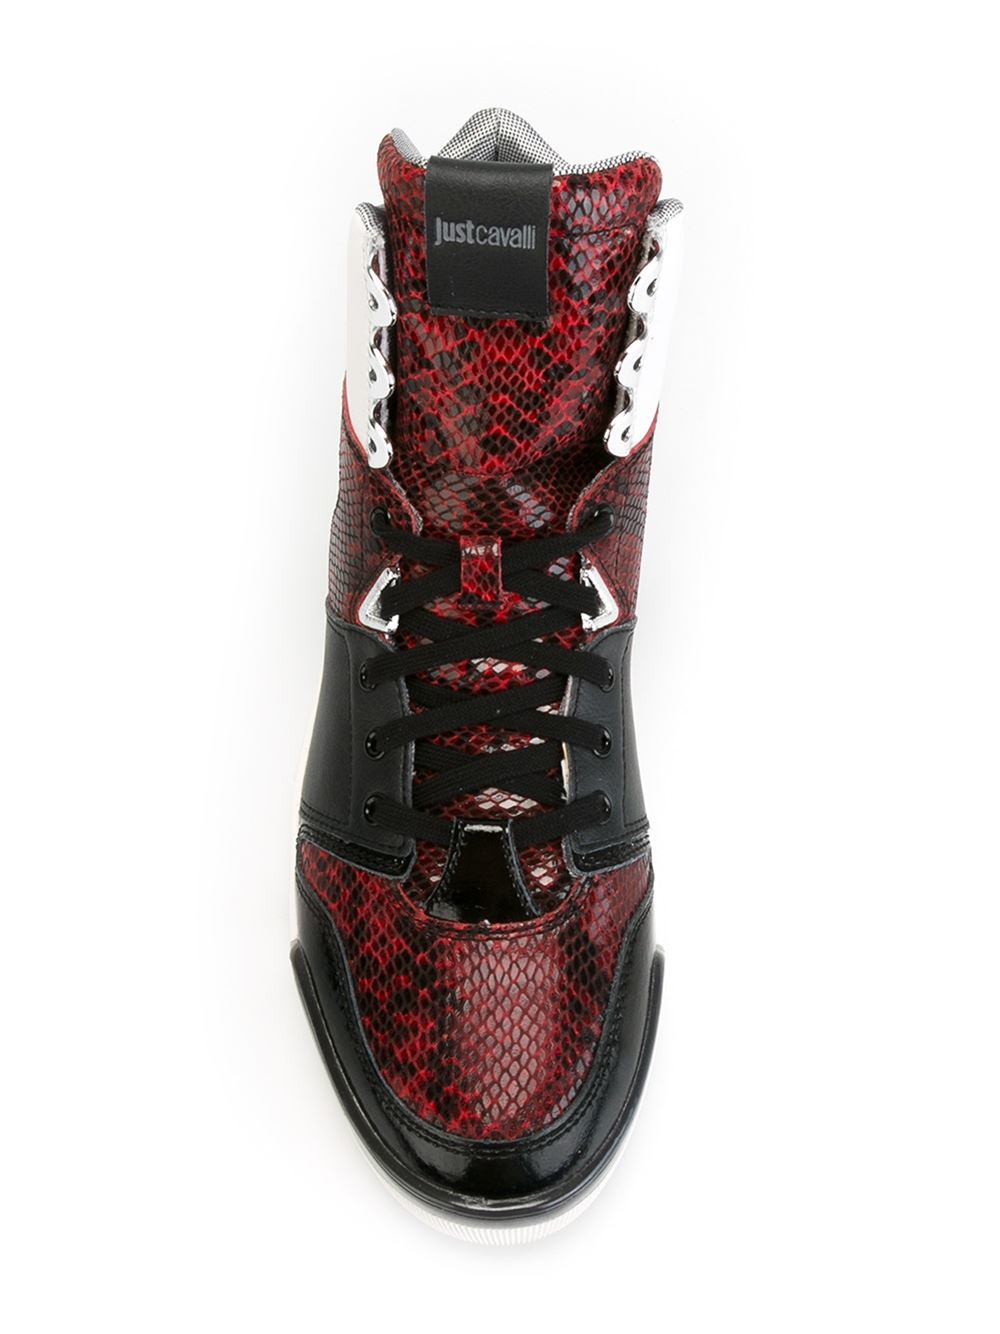 discount cost Just Cavalli panelled sneakers discount release dates free shipping marketable WBvTo04g1